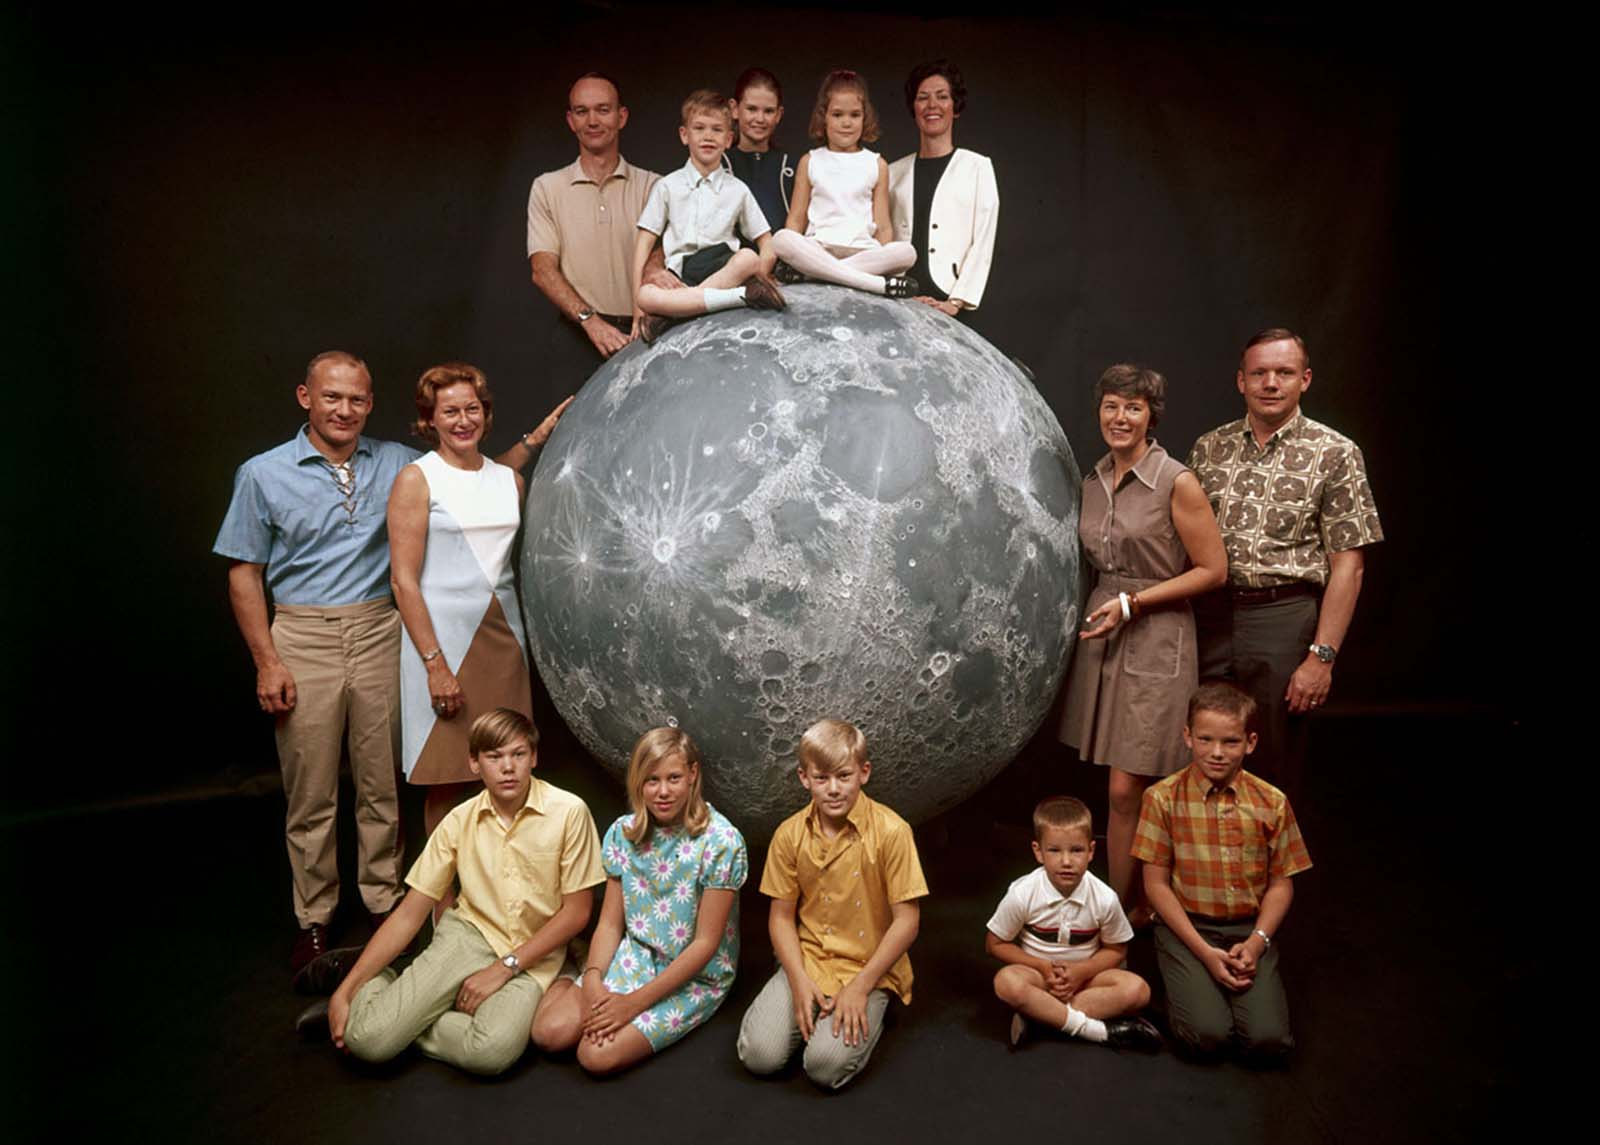 A group portrait of NASA's Apollo 11 astronauts posing with their families around a model of the moon in March 1969. Pictured are: (at top, from left) the astronaut Michael Collins; his children, Mike, Kate, and Ann; and his wife, Pat; (at left) the astronaut Buzz Aldrin; his wife, Joan; and his children, Mike, Jan, and Andy; and (at right) the astronaut Neil Armstrong; his wife, Jan; and his sons, Ricky and Mark.